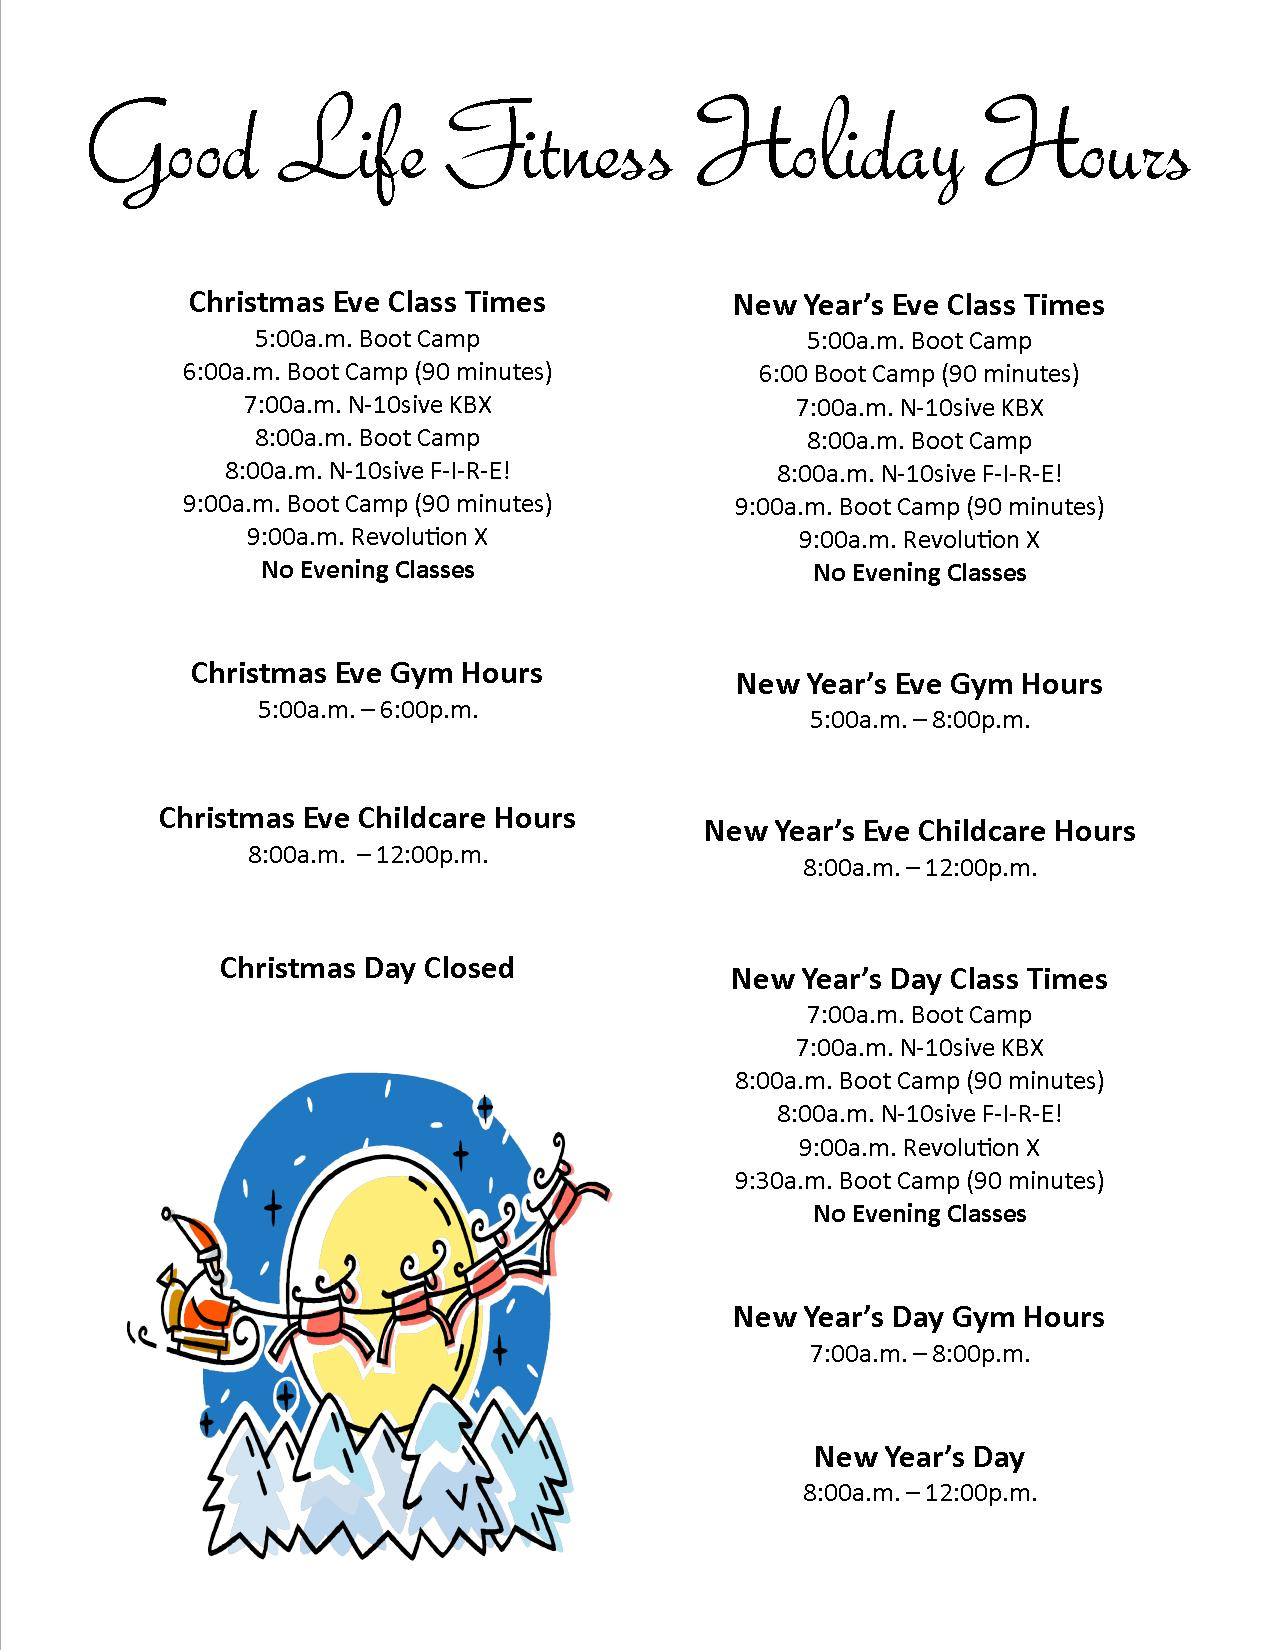 Good Life Fitness Holiday Schedule